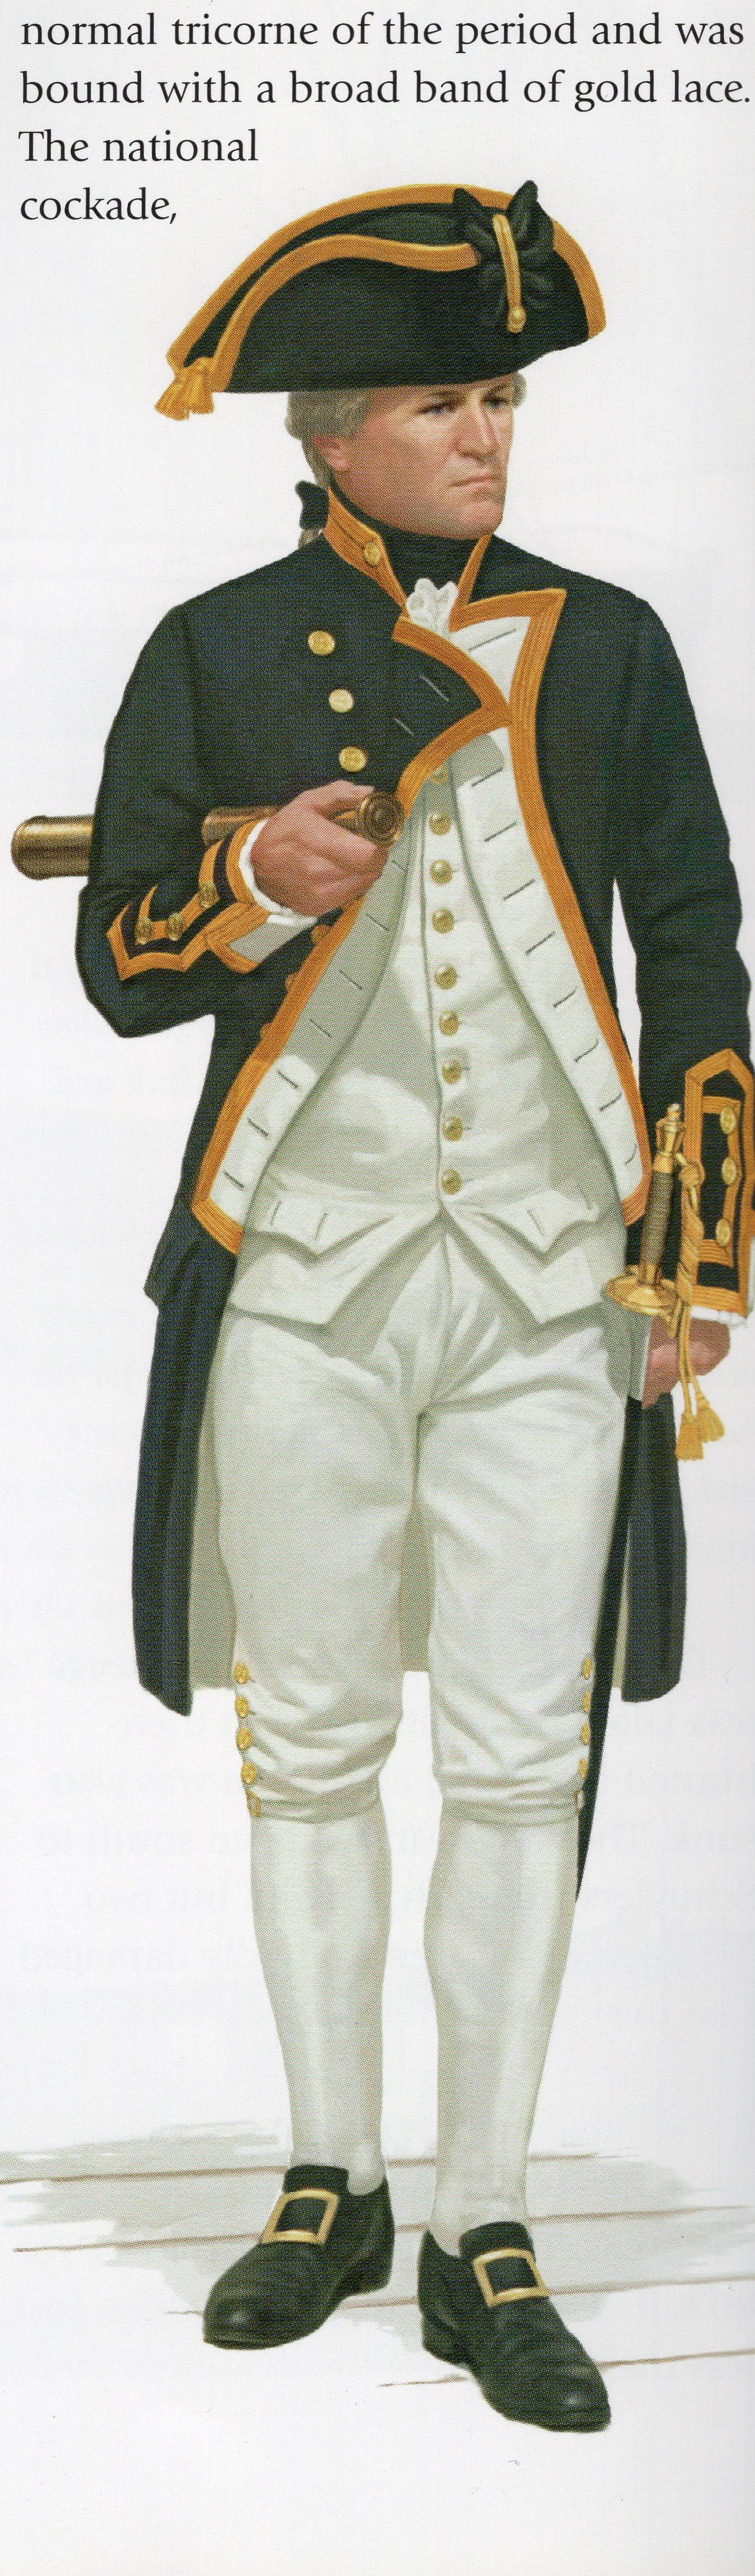 "Typical uniform of a Royal Navy captain. From ""The Illustrated Encyclopedia of Uniforms from 1775-1784: The American Revolutionary War."""